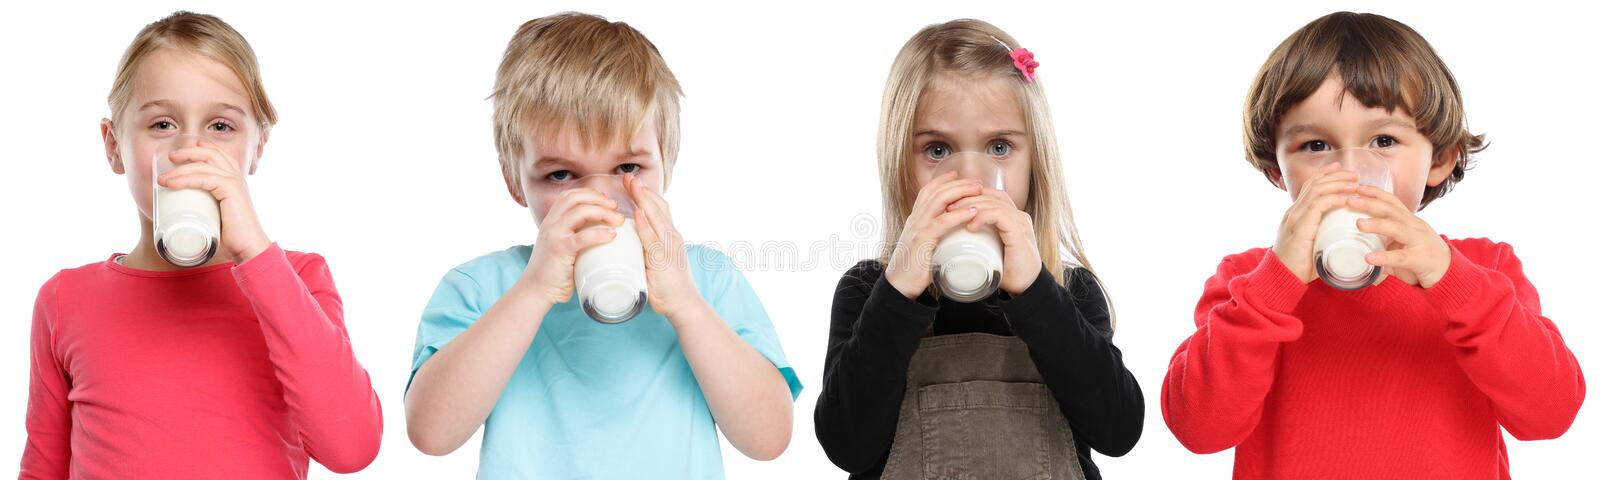 Group of children little girl boy child drinking milk kid glass. Healthy eating isolated on a white background stock image